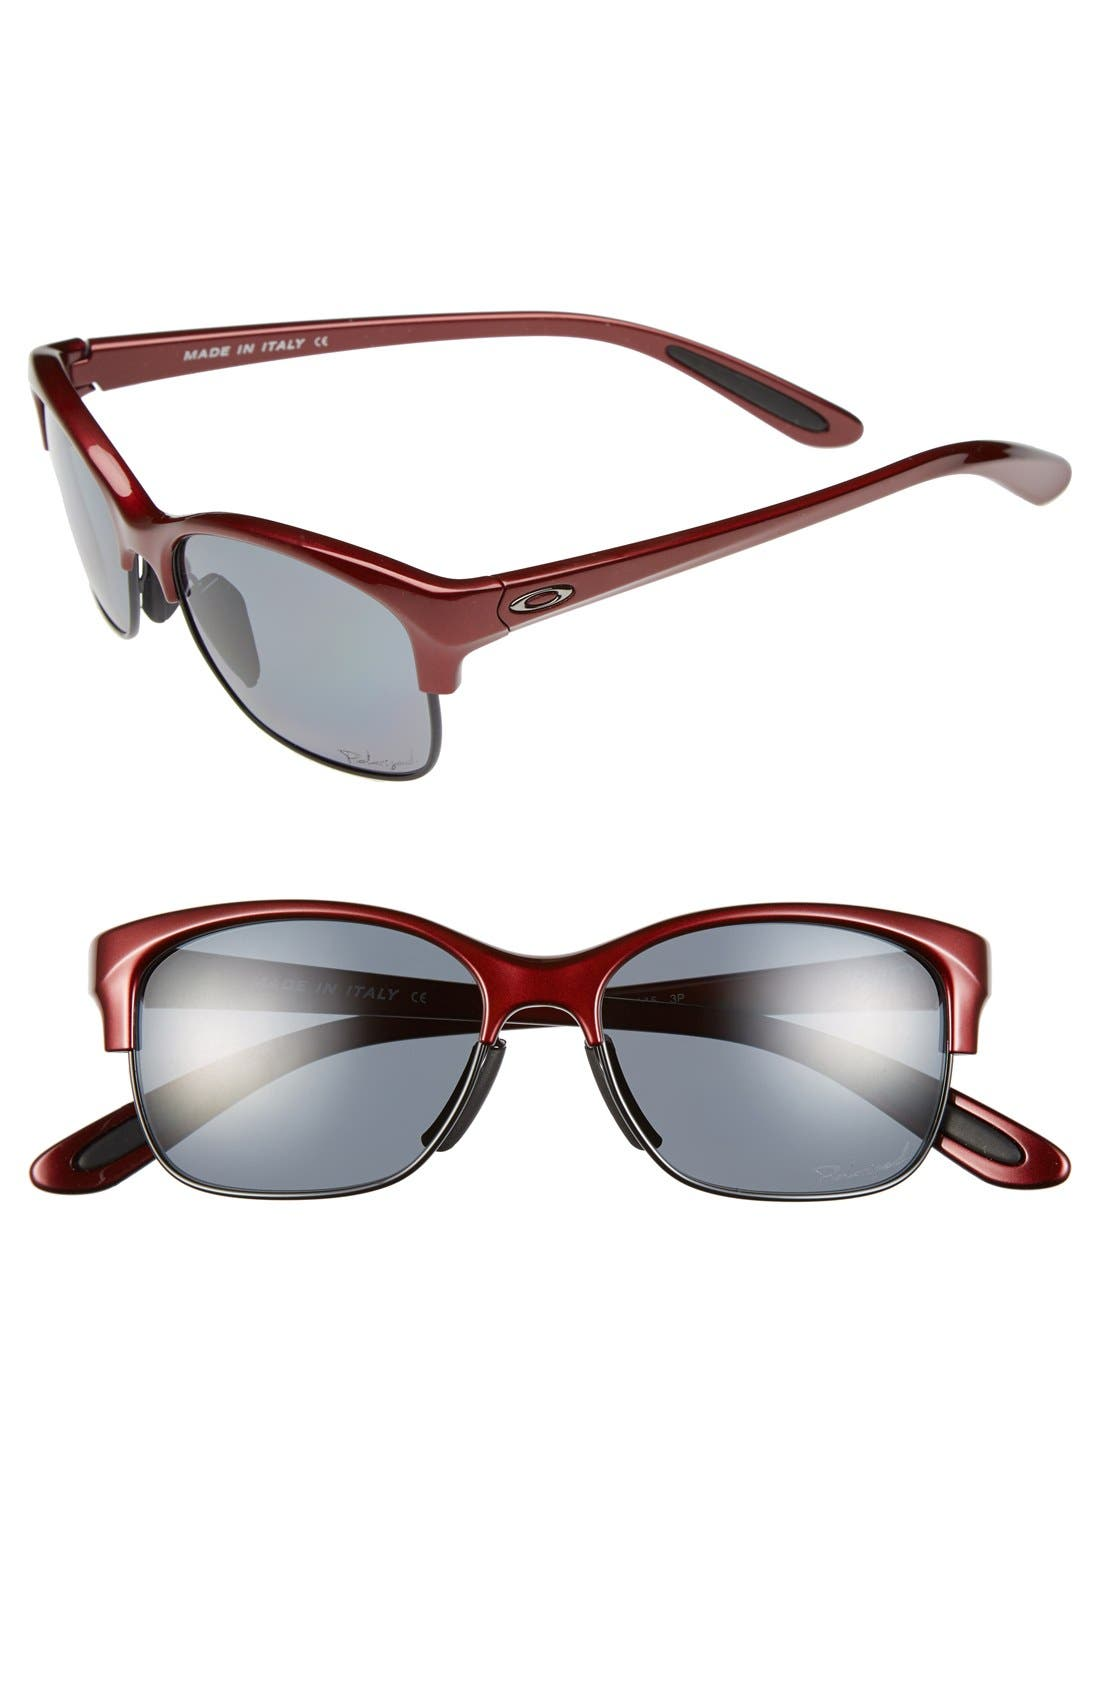 Main Image - Oakley 'RSVP' 53mm Sunglasses